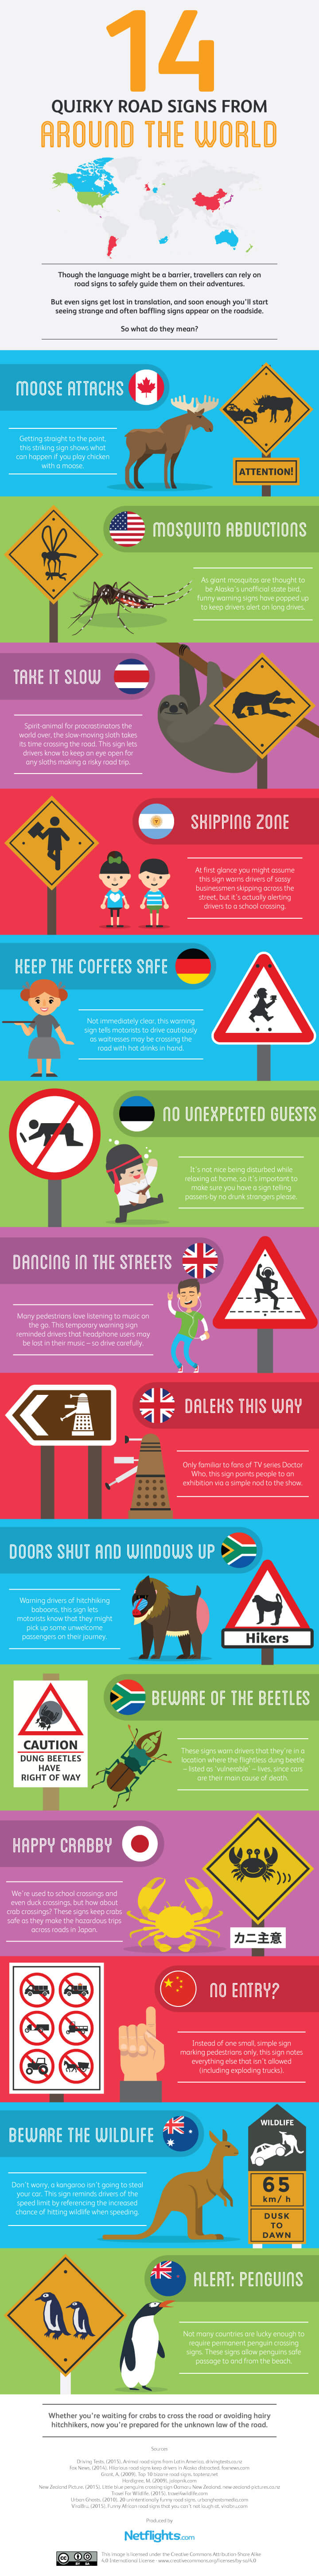 Infographic: 14 quirky road signs from around the world